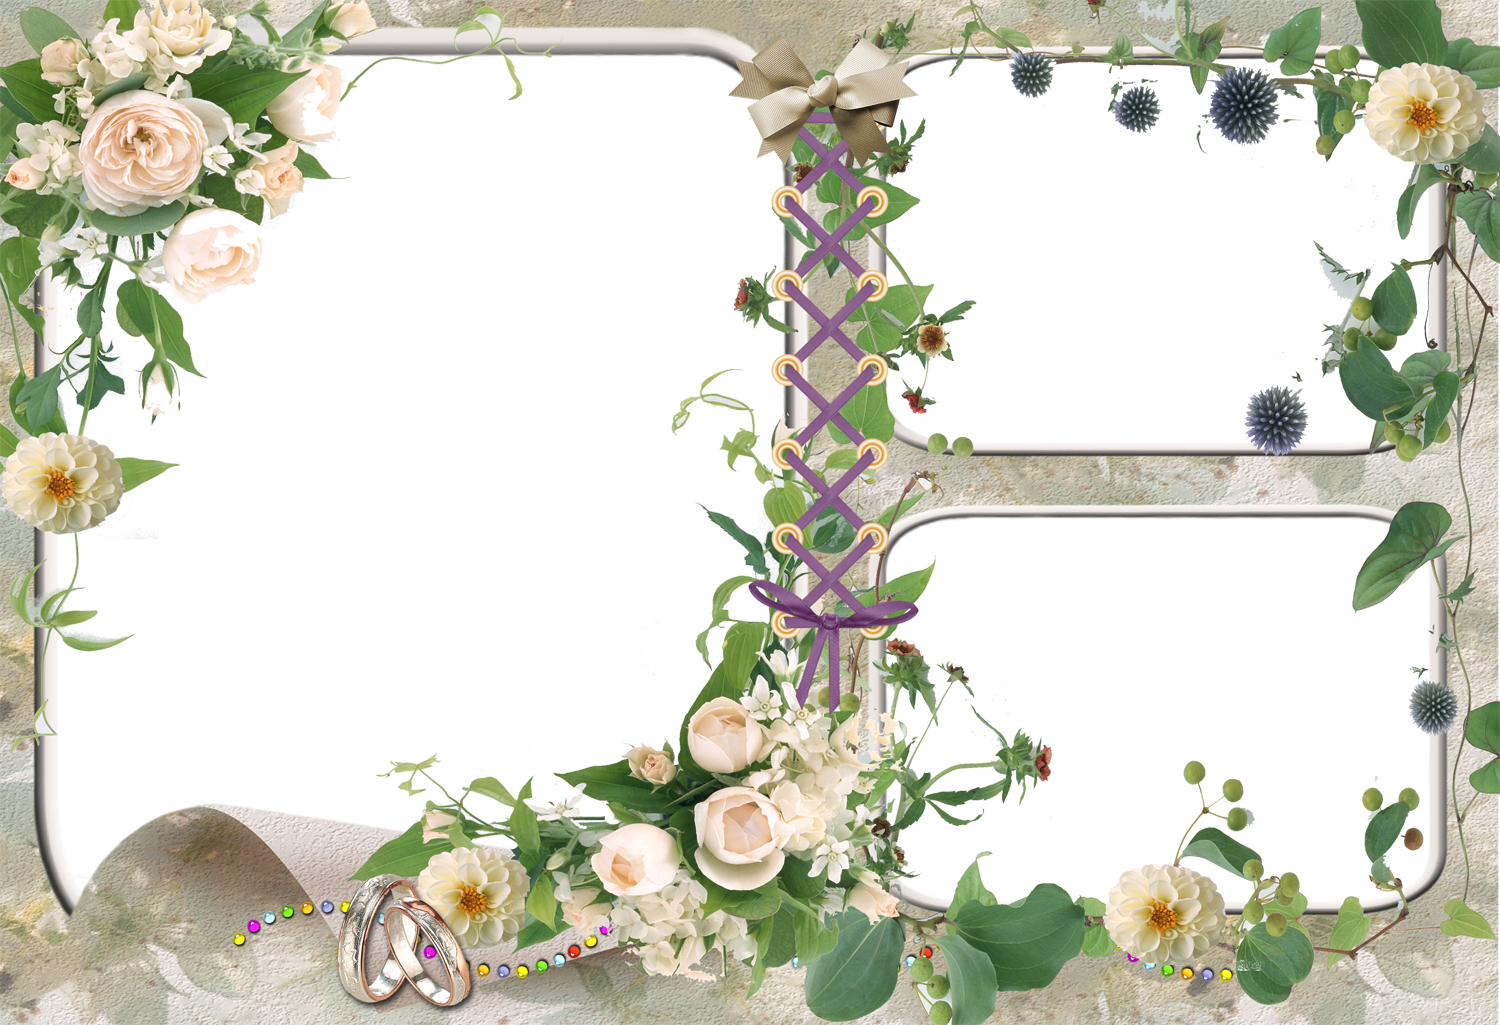 Wallpaper Wedding Background Images Hd Png